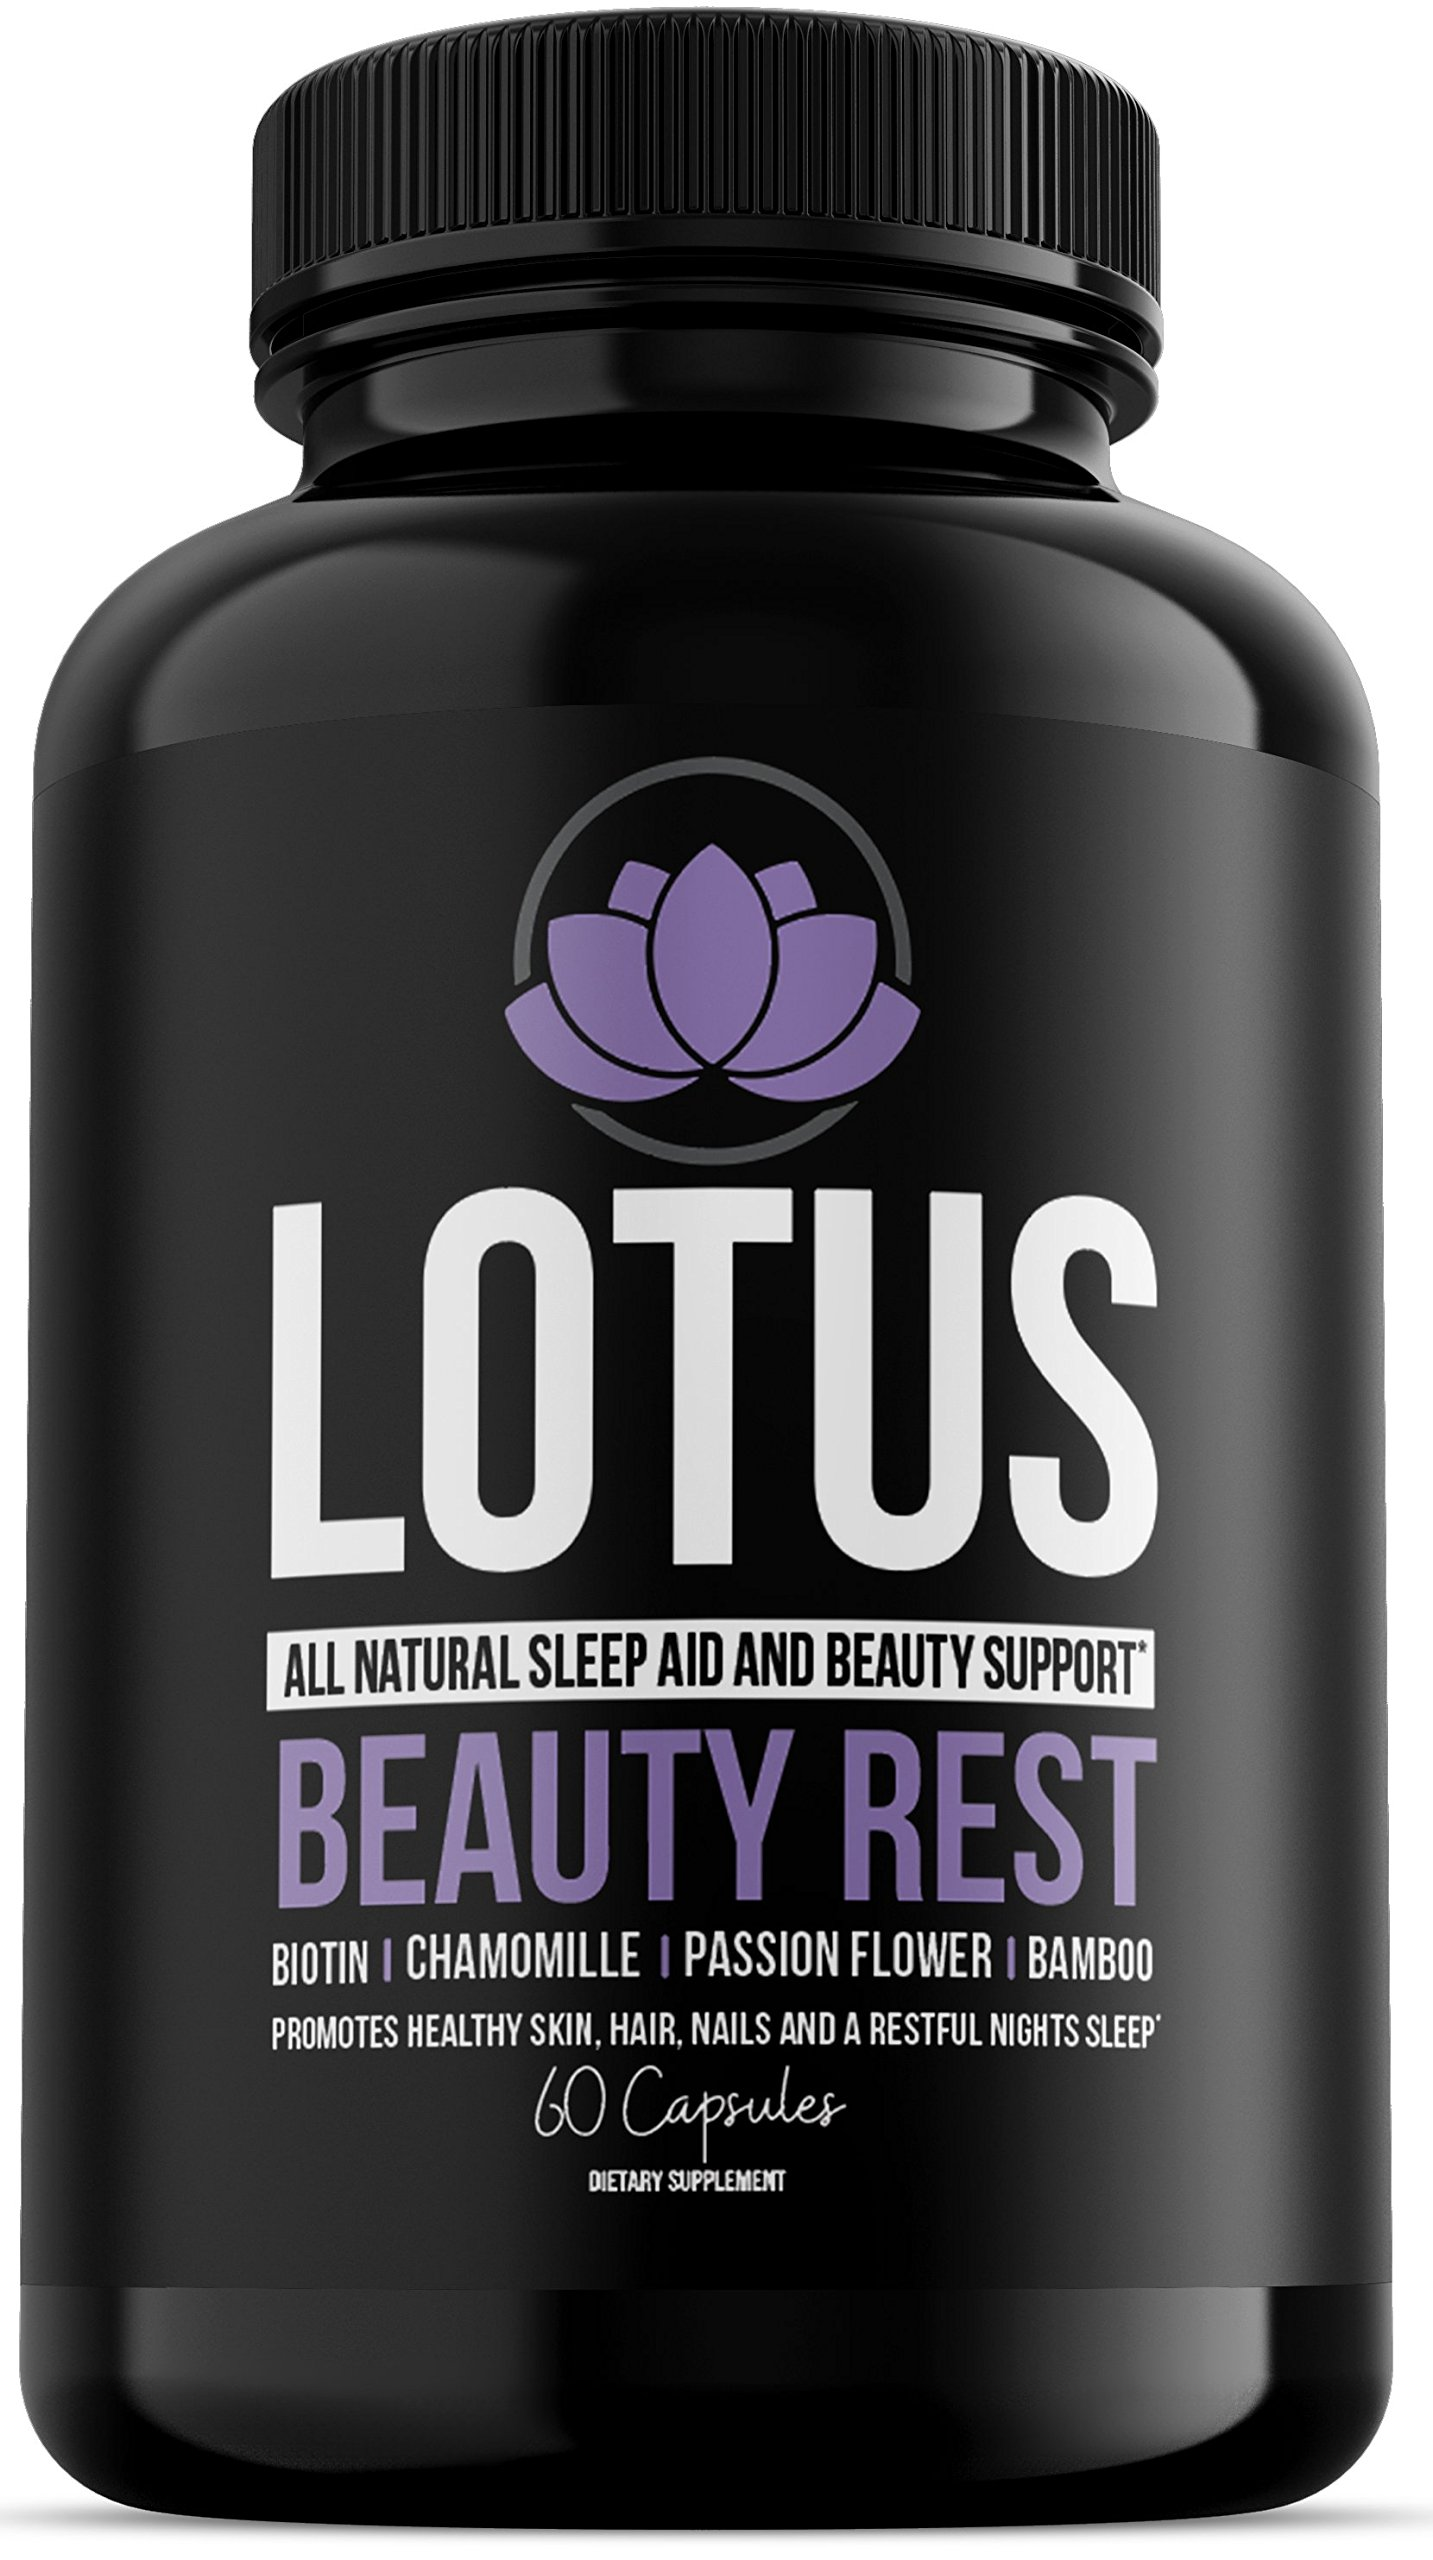 Lotus Beauty Rest- All Natural Sleep AID & Beauty Support - Hair Growth, Clear Skin & Strong Nails Vitamins - Collagen Builder - Vegan - Biotin 5000 - Melatonin Free - Chamomile - 5HTP